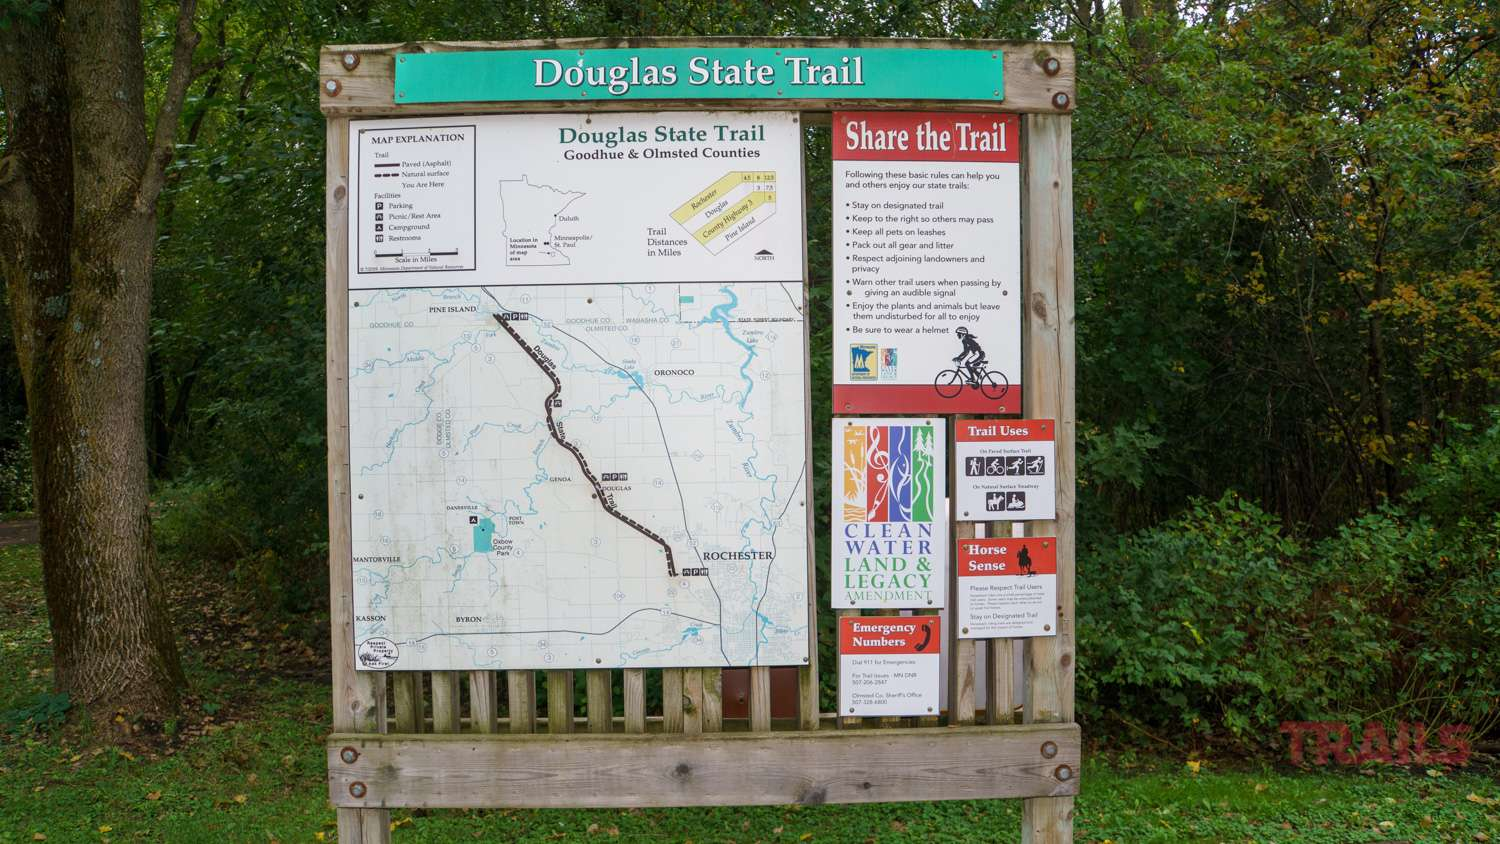 A trail sign for the Douglas State Trail